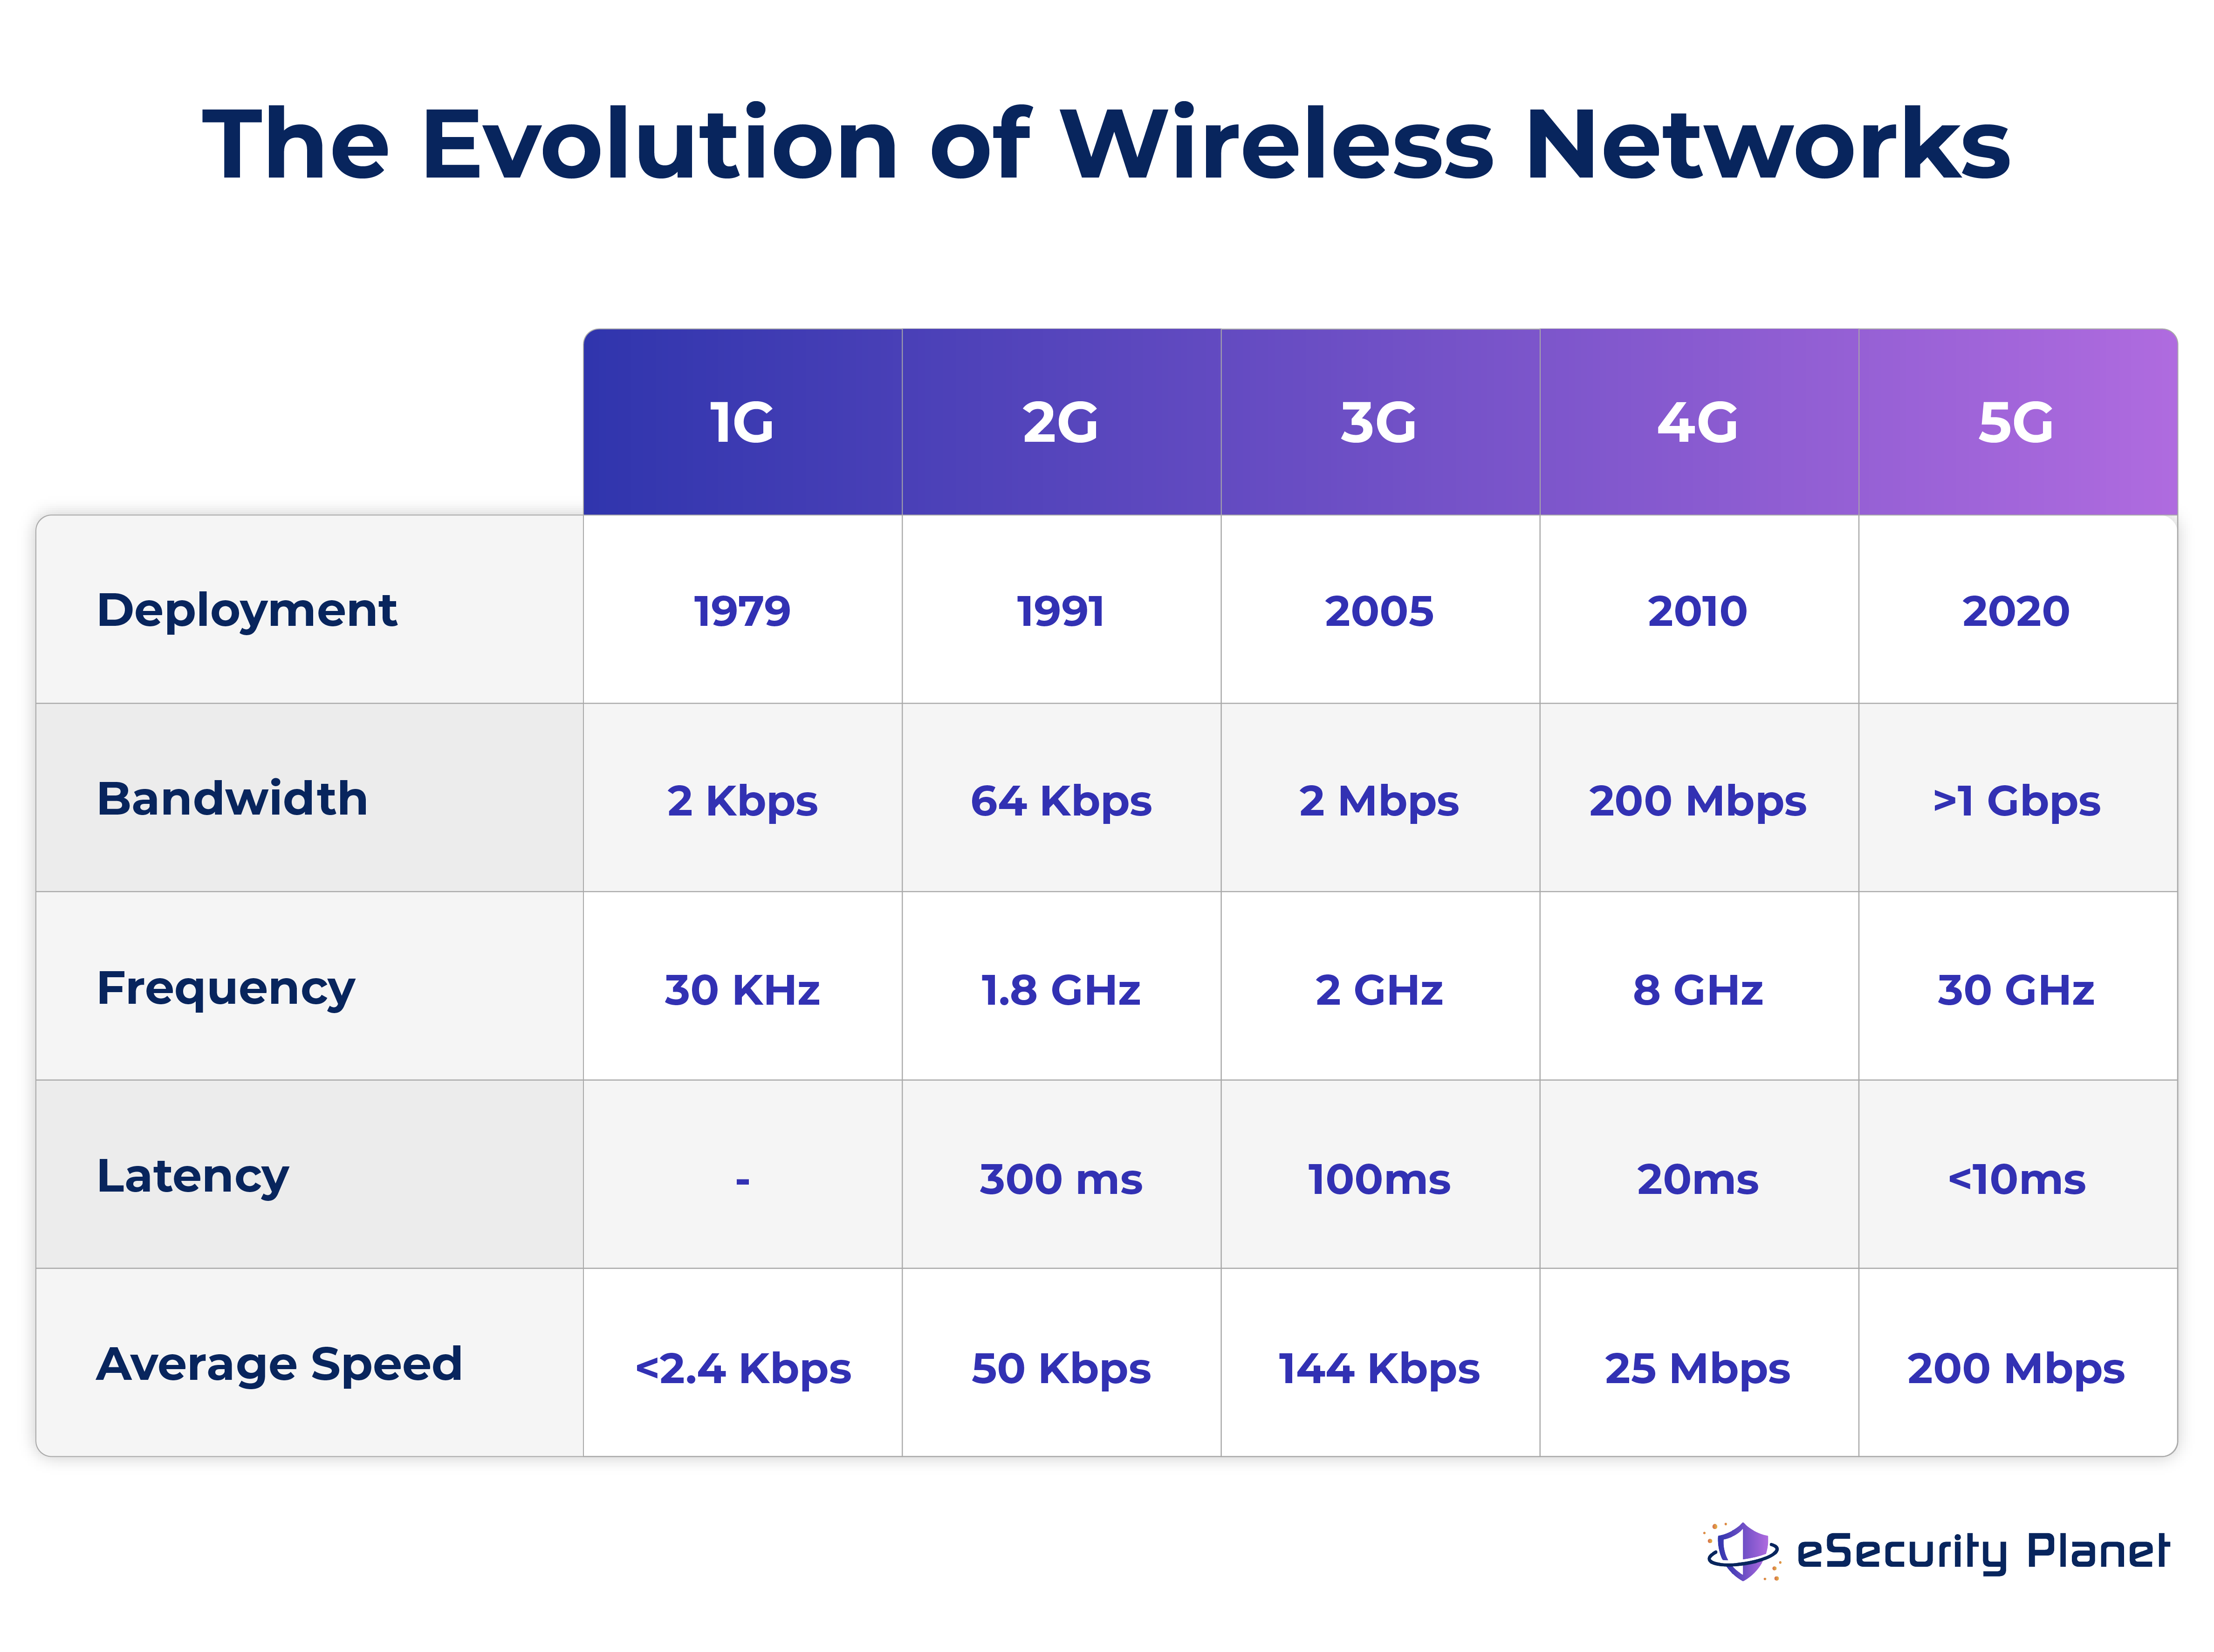 A graphic showing how wireless networks evolved over the years in terms of bandwidth, frequency, latency, and average speed. 5G is the newest generation of telecommunication networks for wireless devices.